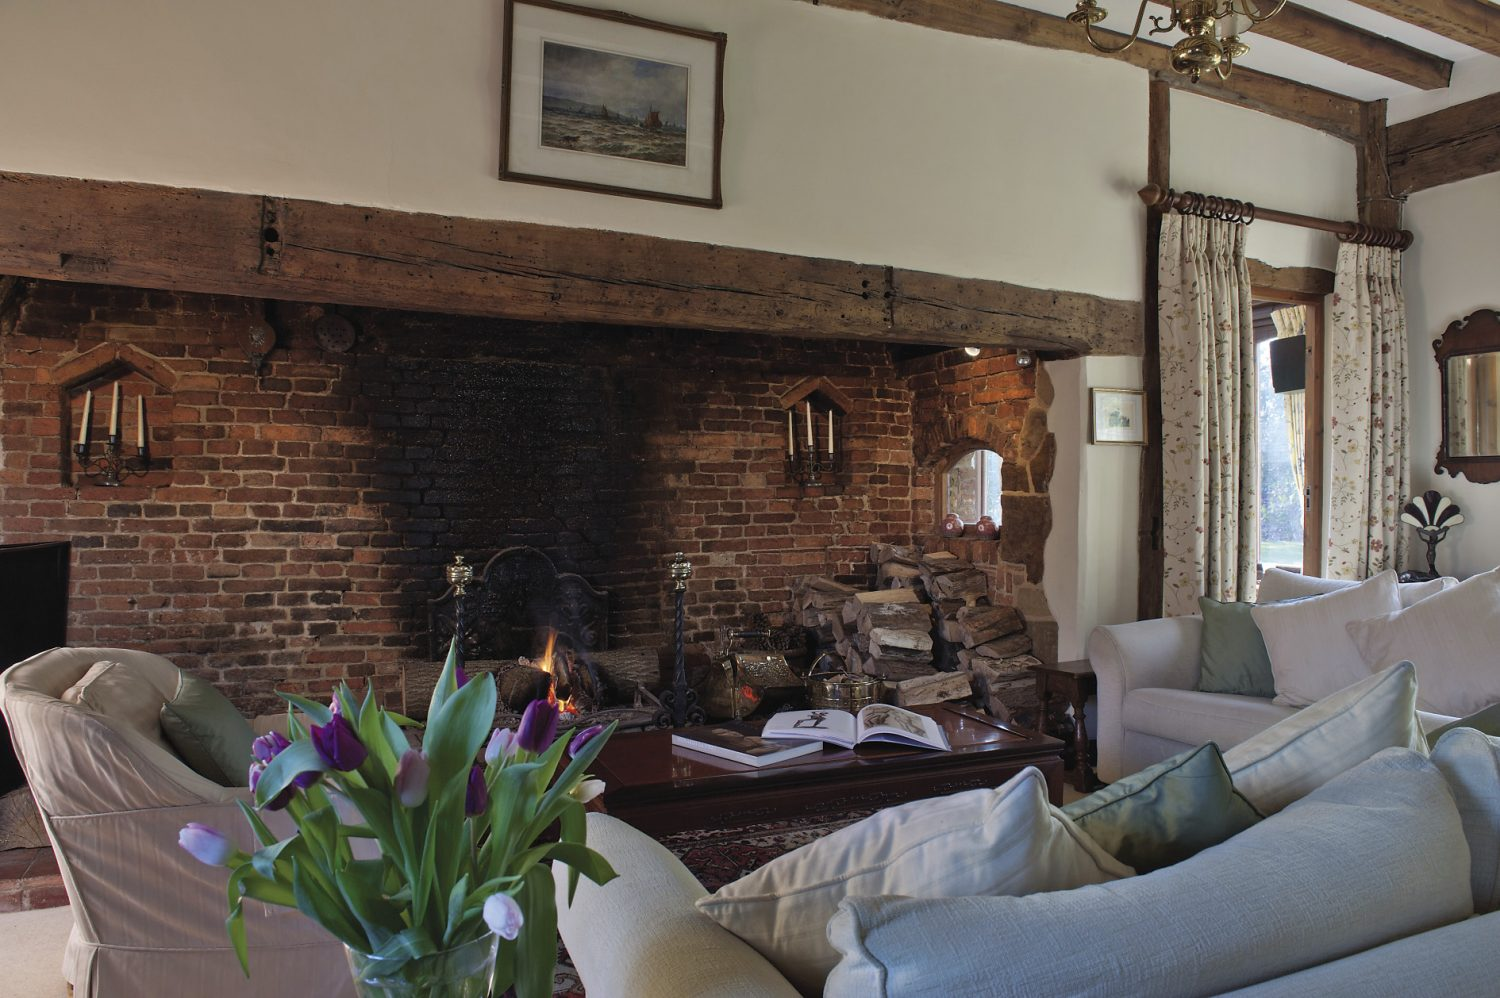 In the drawing room the fireplace stretches almost the whole length of one wall